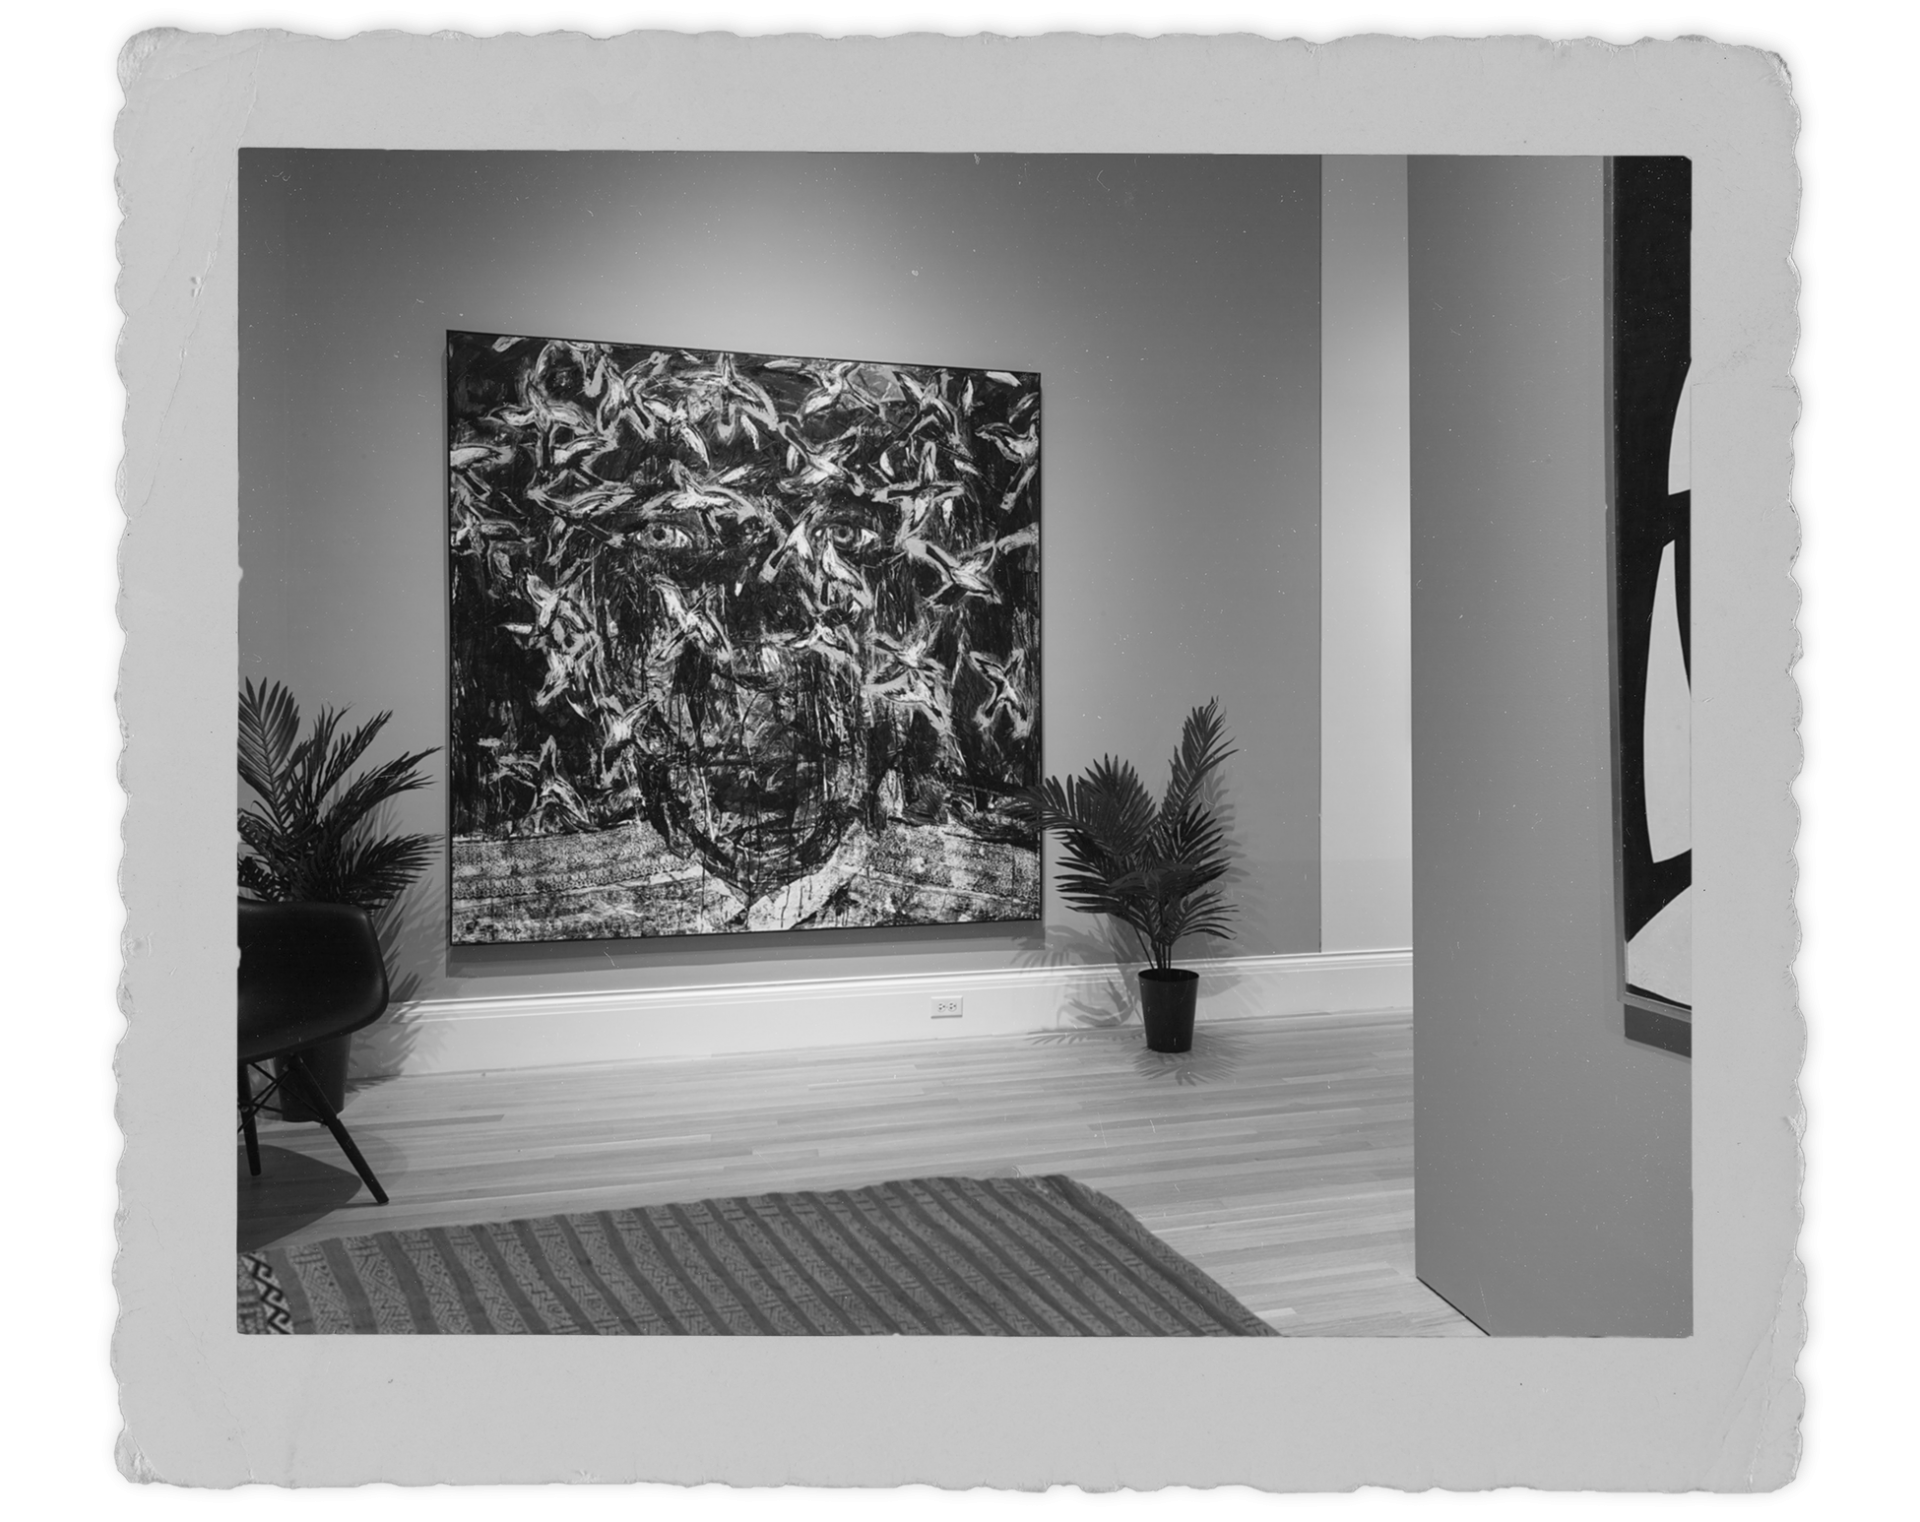 Spirit of the Colony by Arnaldo Roche Rabell, hanging in a mid century modern interior